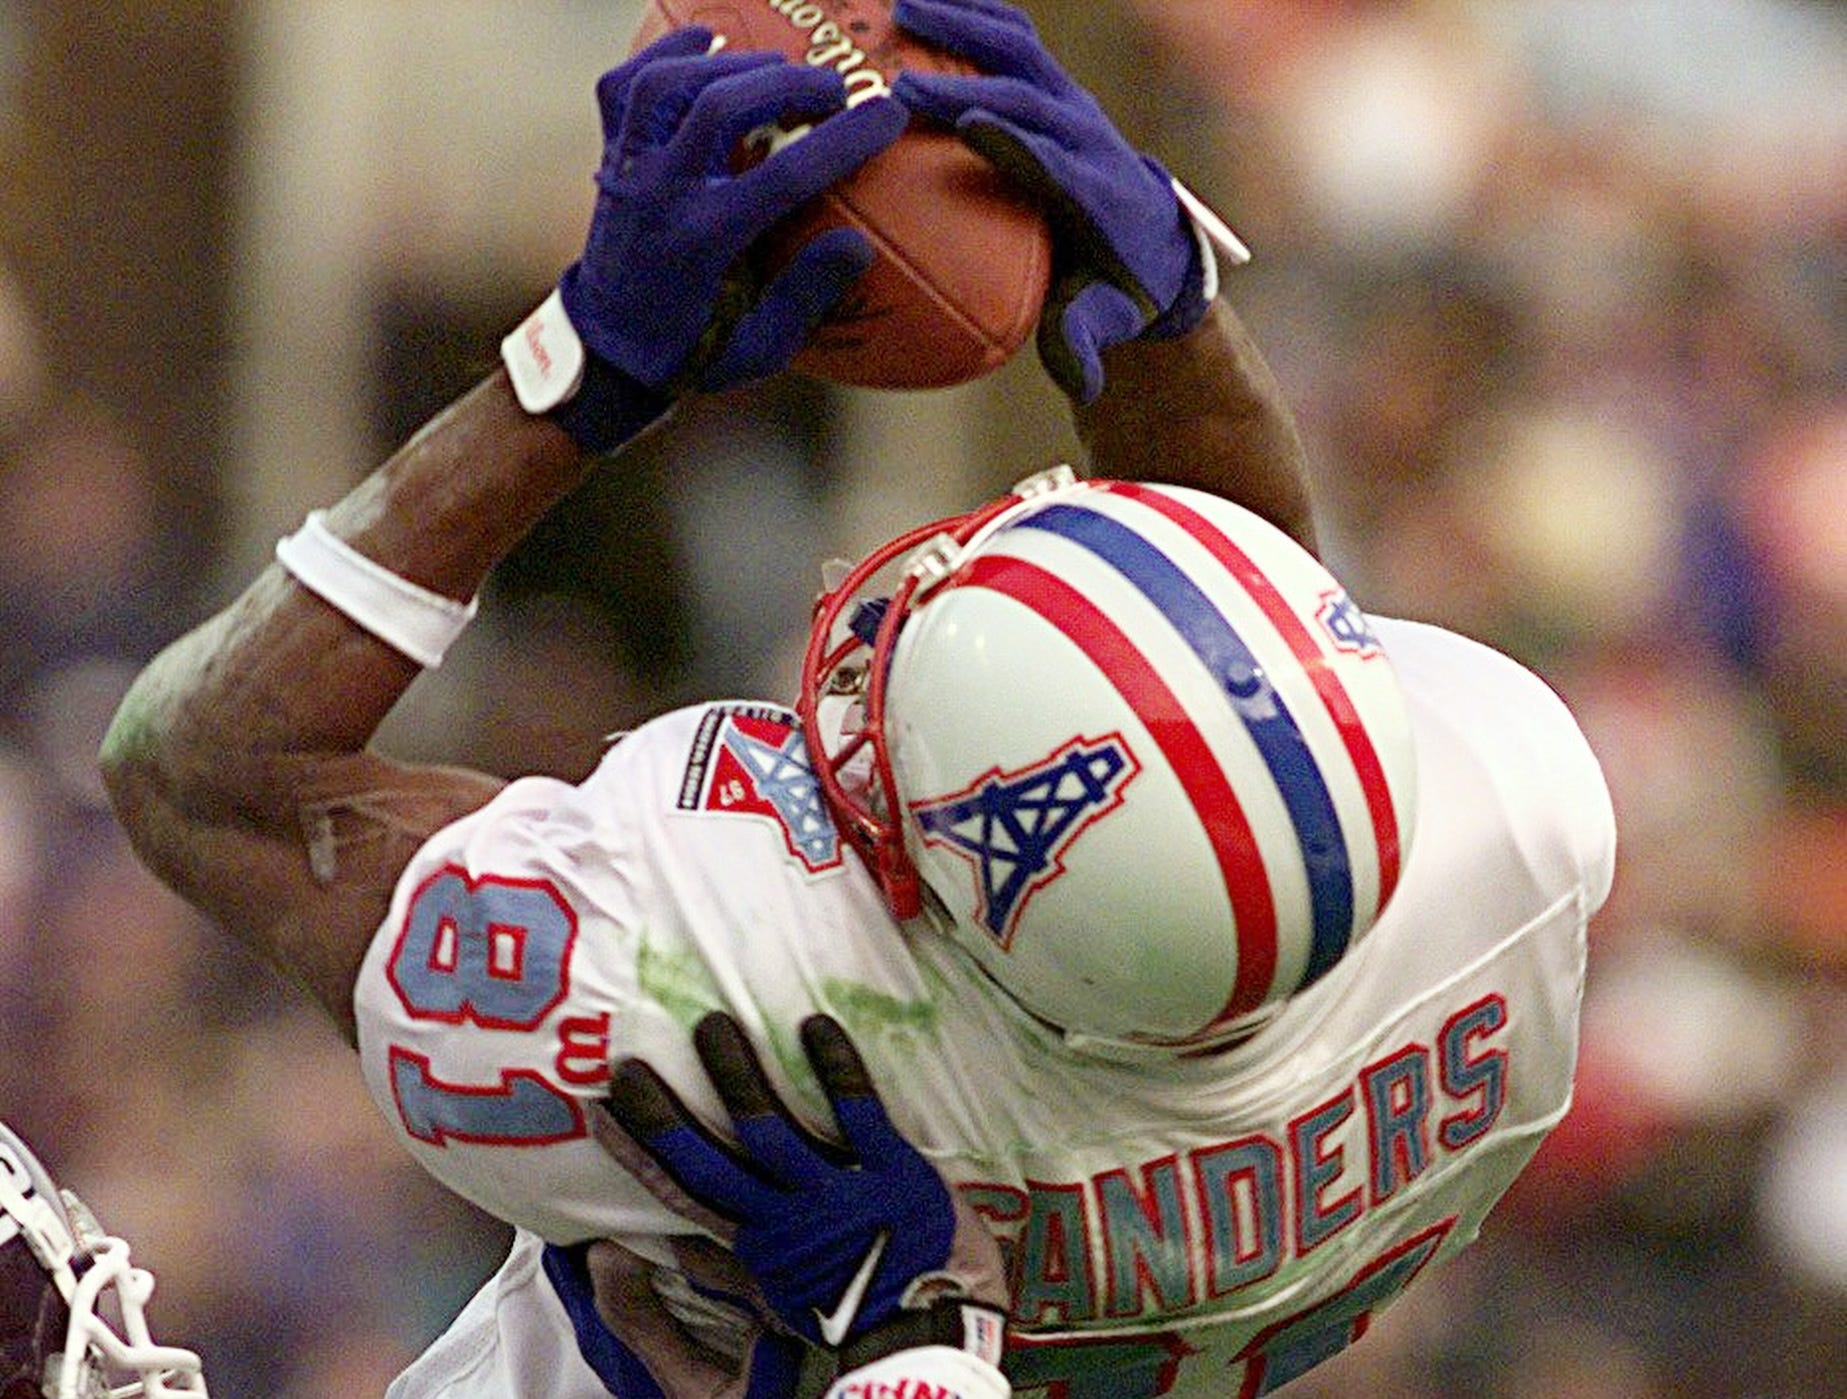 The Tennessee Oilers wide receiver Chris Sanders hauls down a pass in front of the Giants defender Jason Sehorn in the second quarter of their 10-6 victory over New York Nov. 9, 1997.